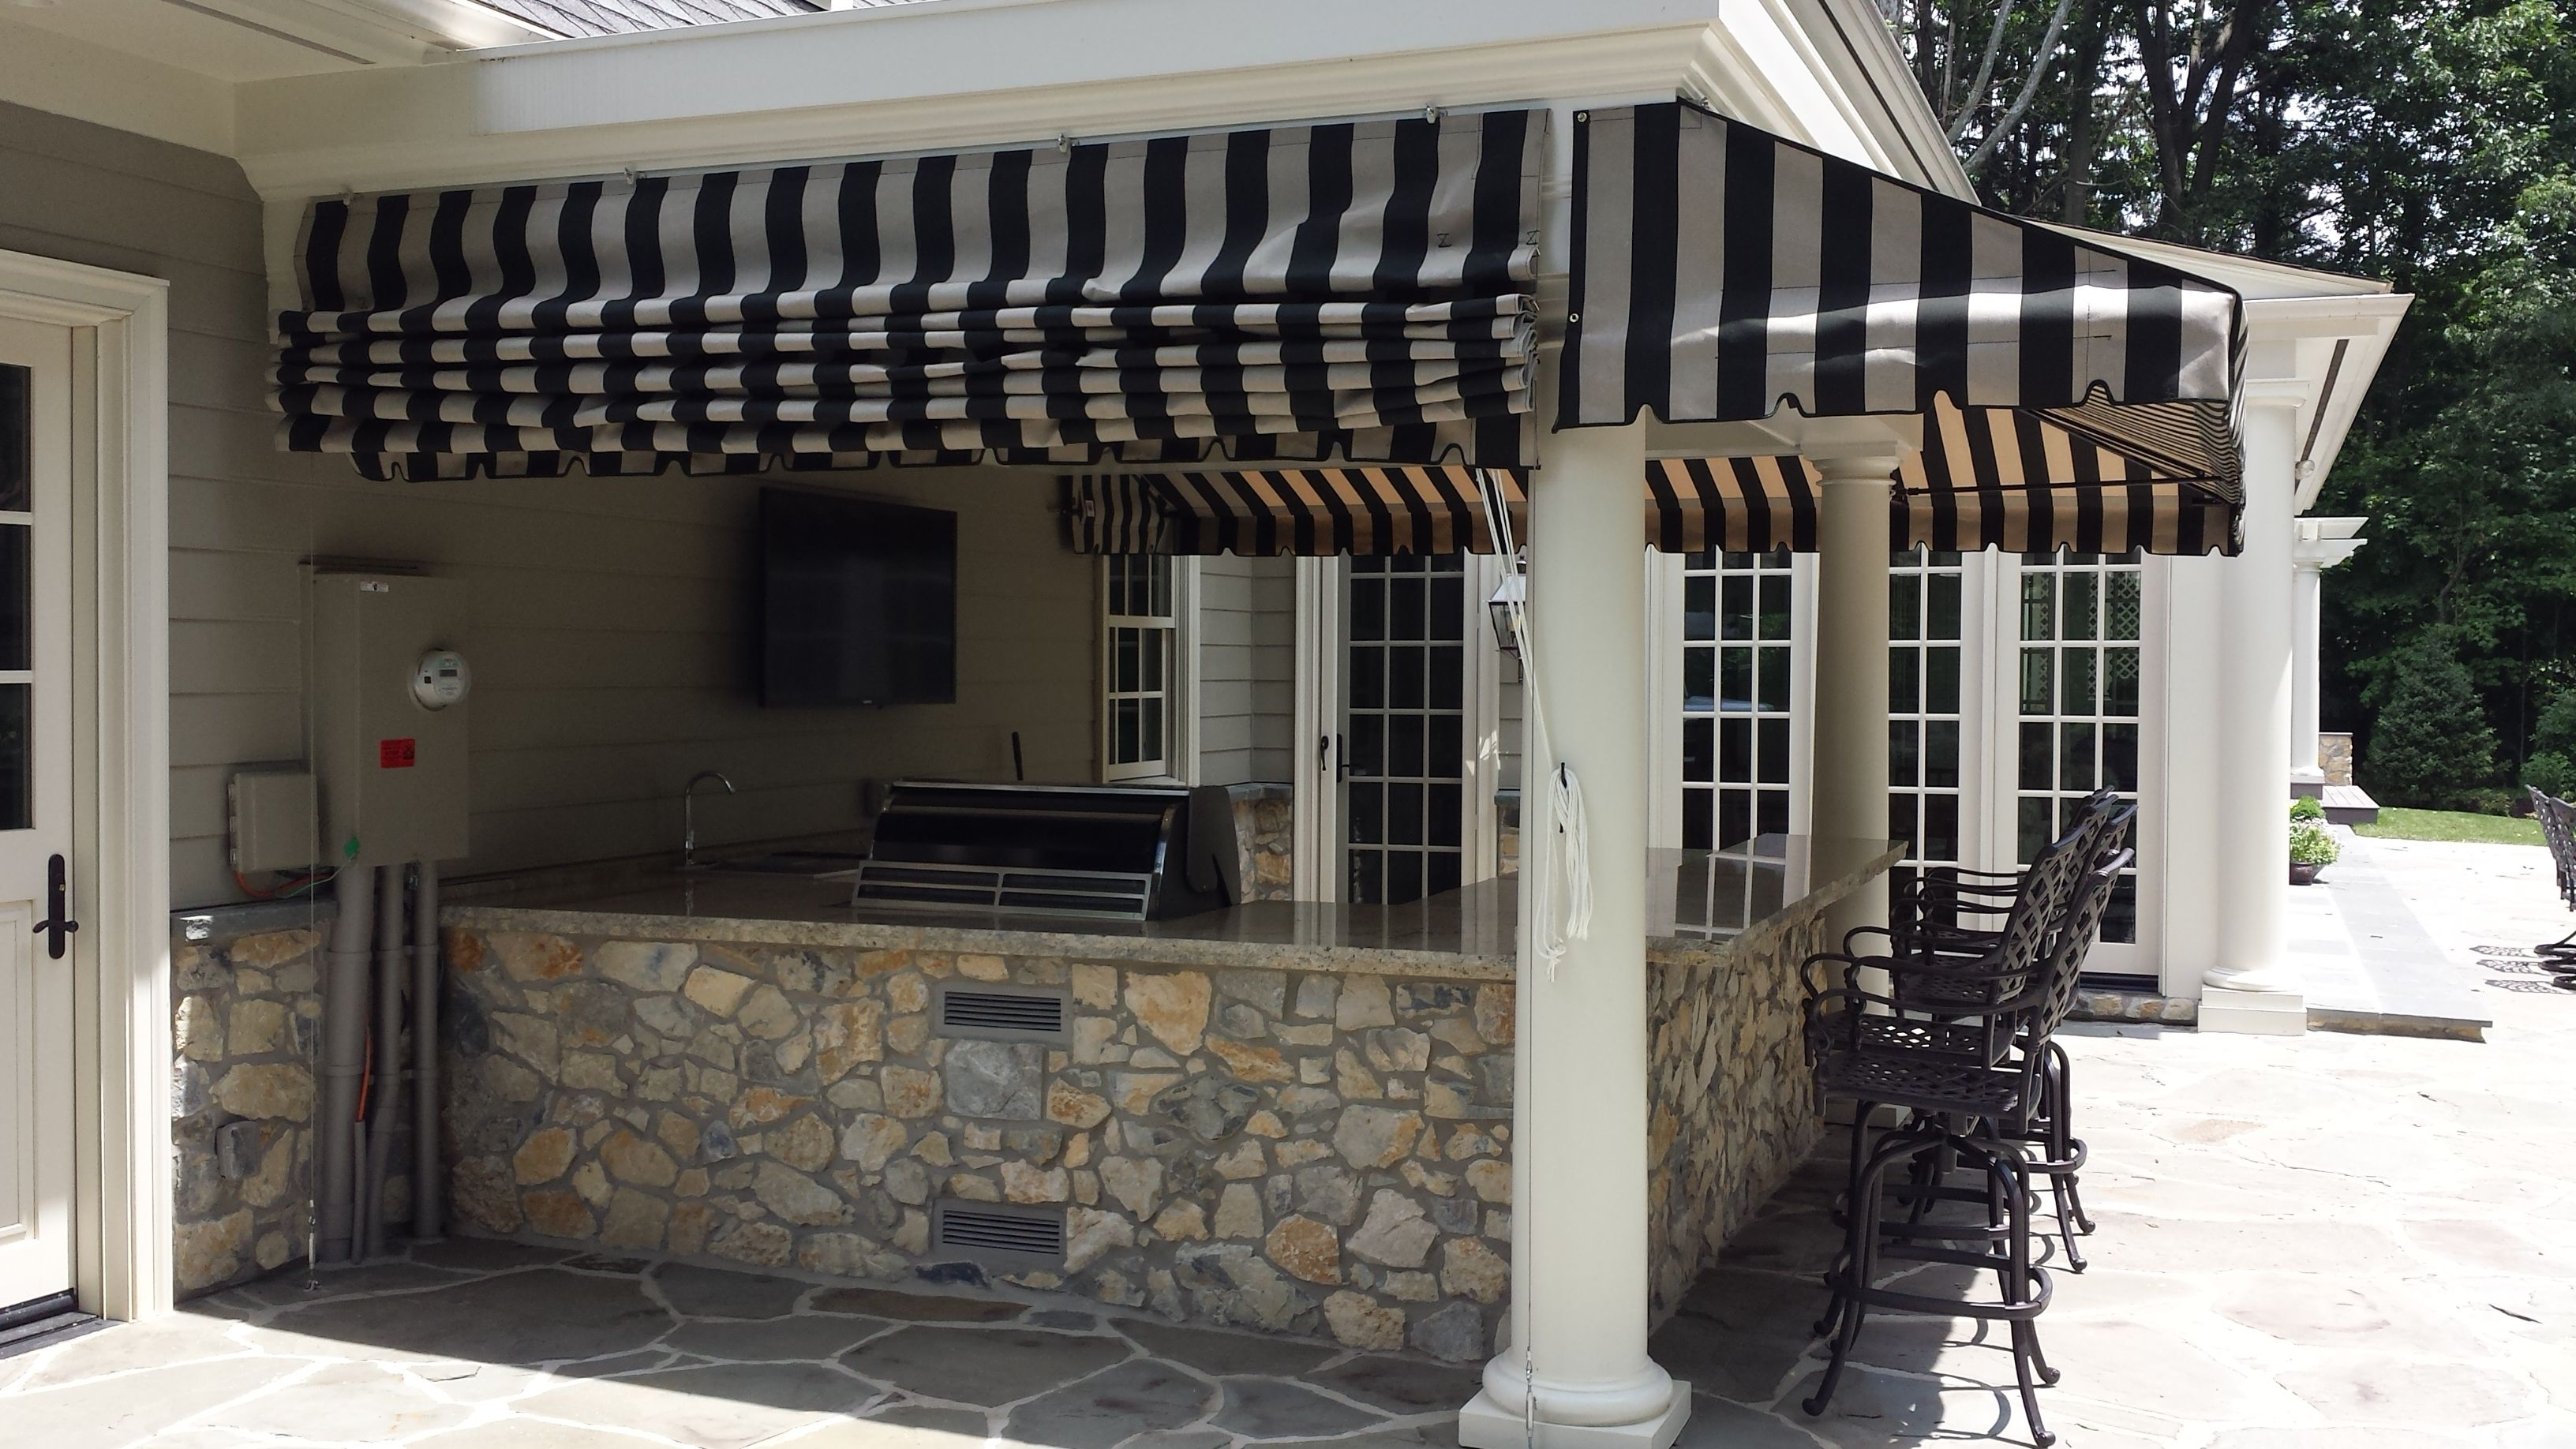 Enhance The Usability Of Your Porch By Installing Custom Fabric Awnings Awnings Create An Extra Overhang Adding To Your Usab Porch Awning Awning Fabric Awning